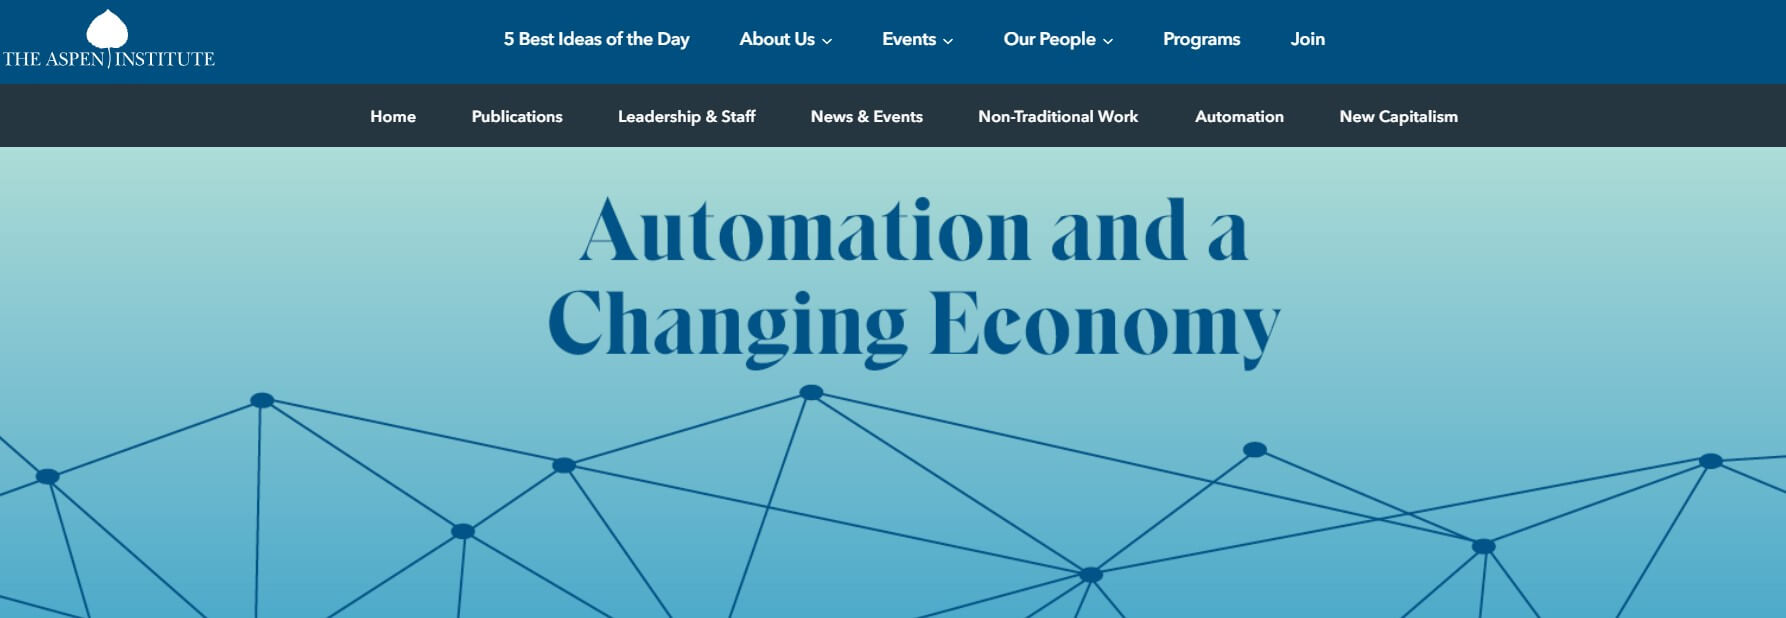 The Aspen Institute is worried about automation